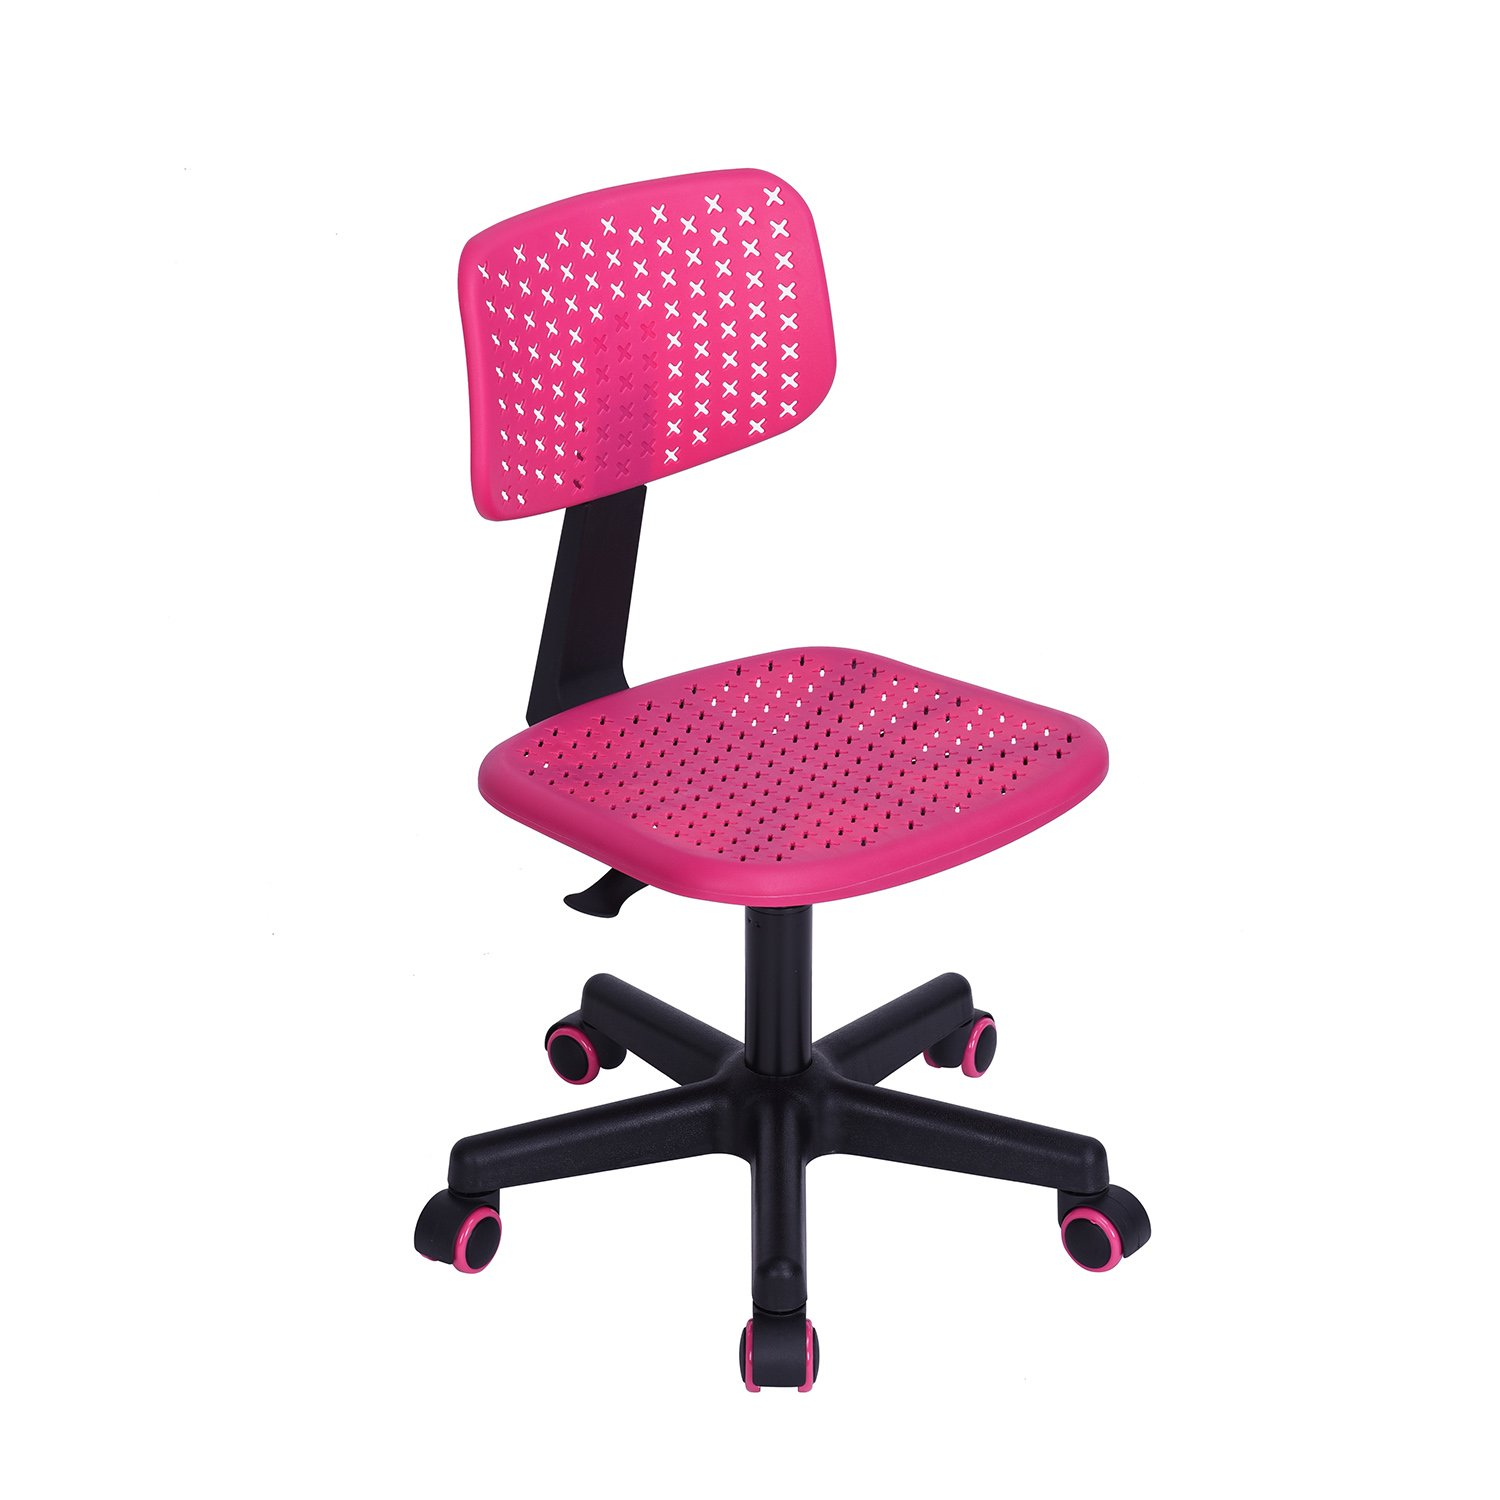 GreenForest Kids Desk Chair, Height Adjustable Swivel Children Computer Chair Ergonomic Student Study Desk Chair, Hollow Star Pink